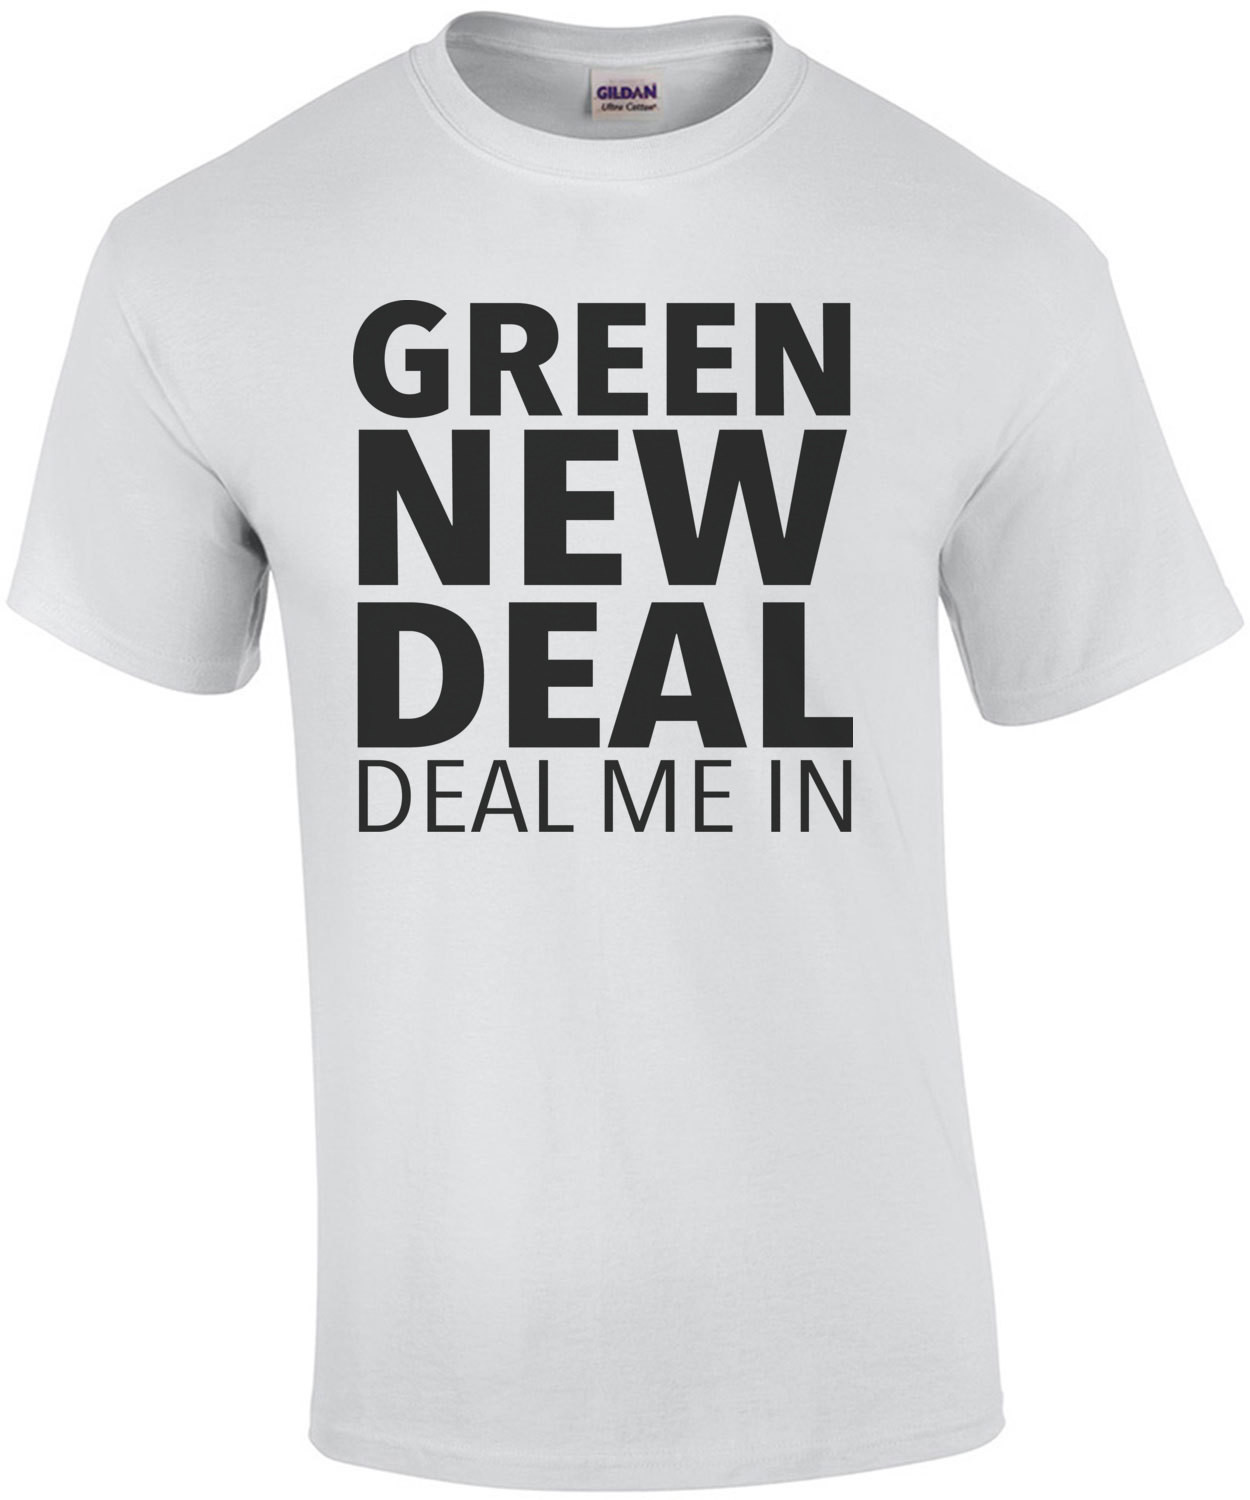 Green New Deal - Deal Me In - AOC - Alexandria Ocasio-Cortez T-Shirt - Election 2020